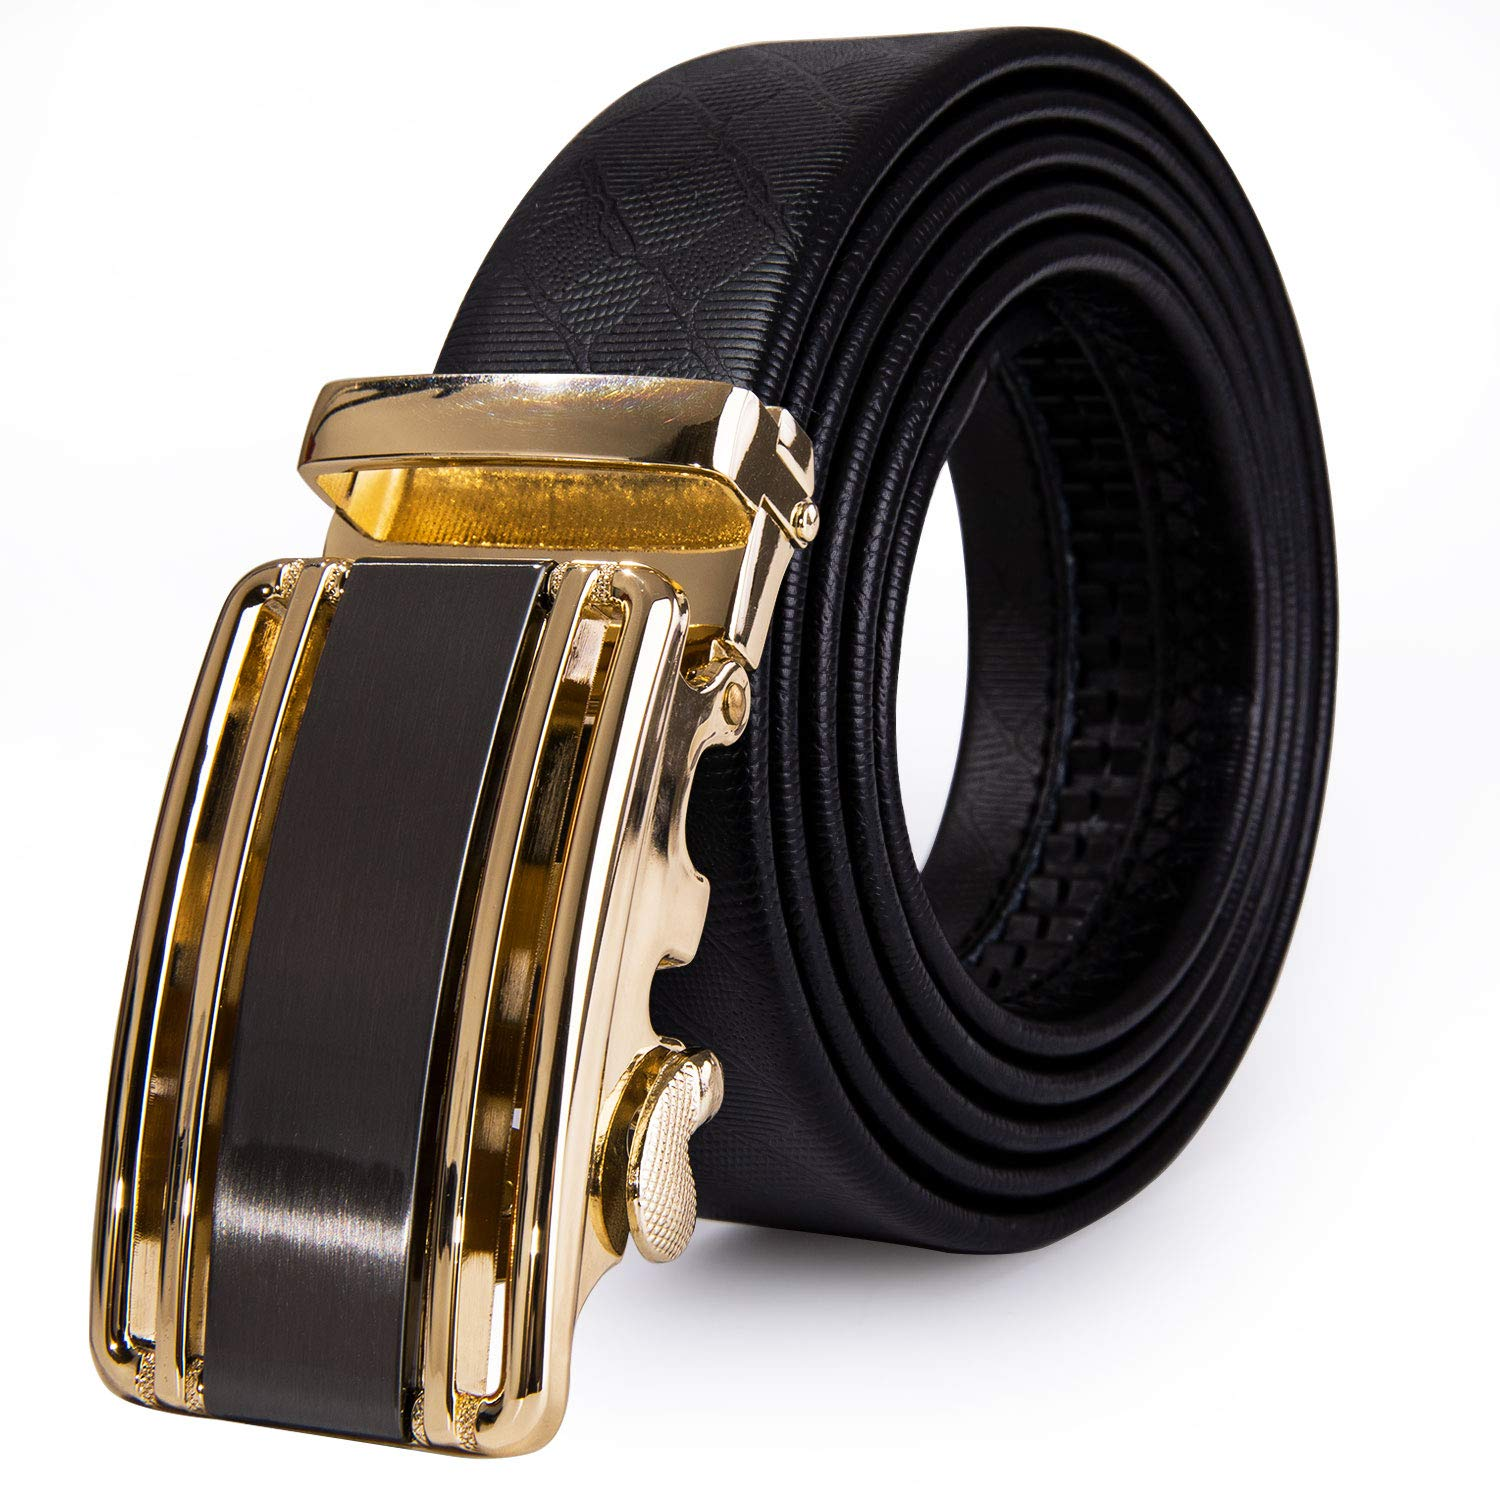 Dubulle Mens Black Leather belt Fashion Buckle Ratchet Belt with Automatic Buckle Gift box Belt